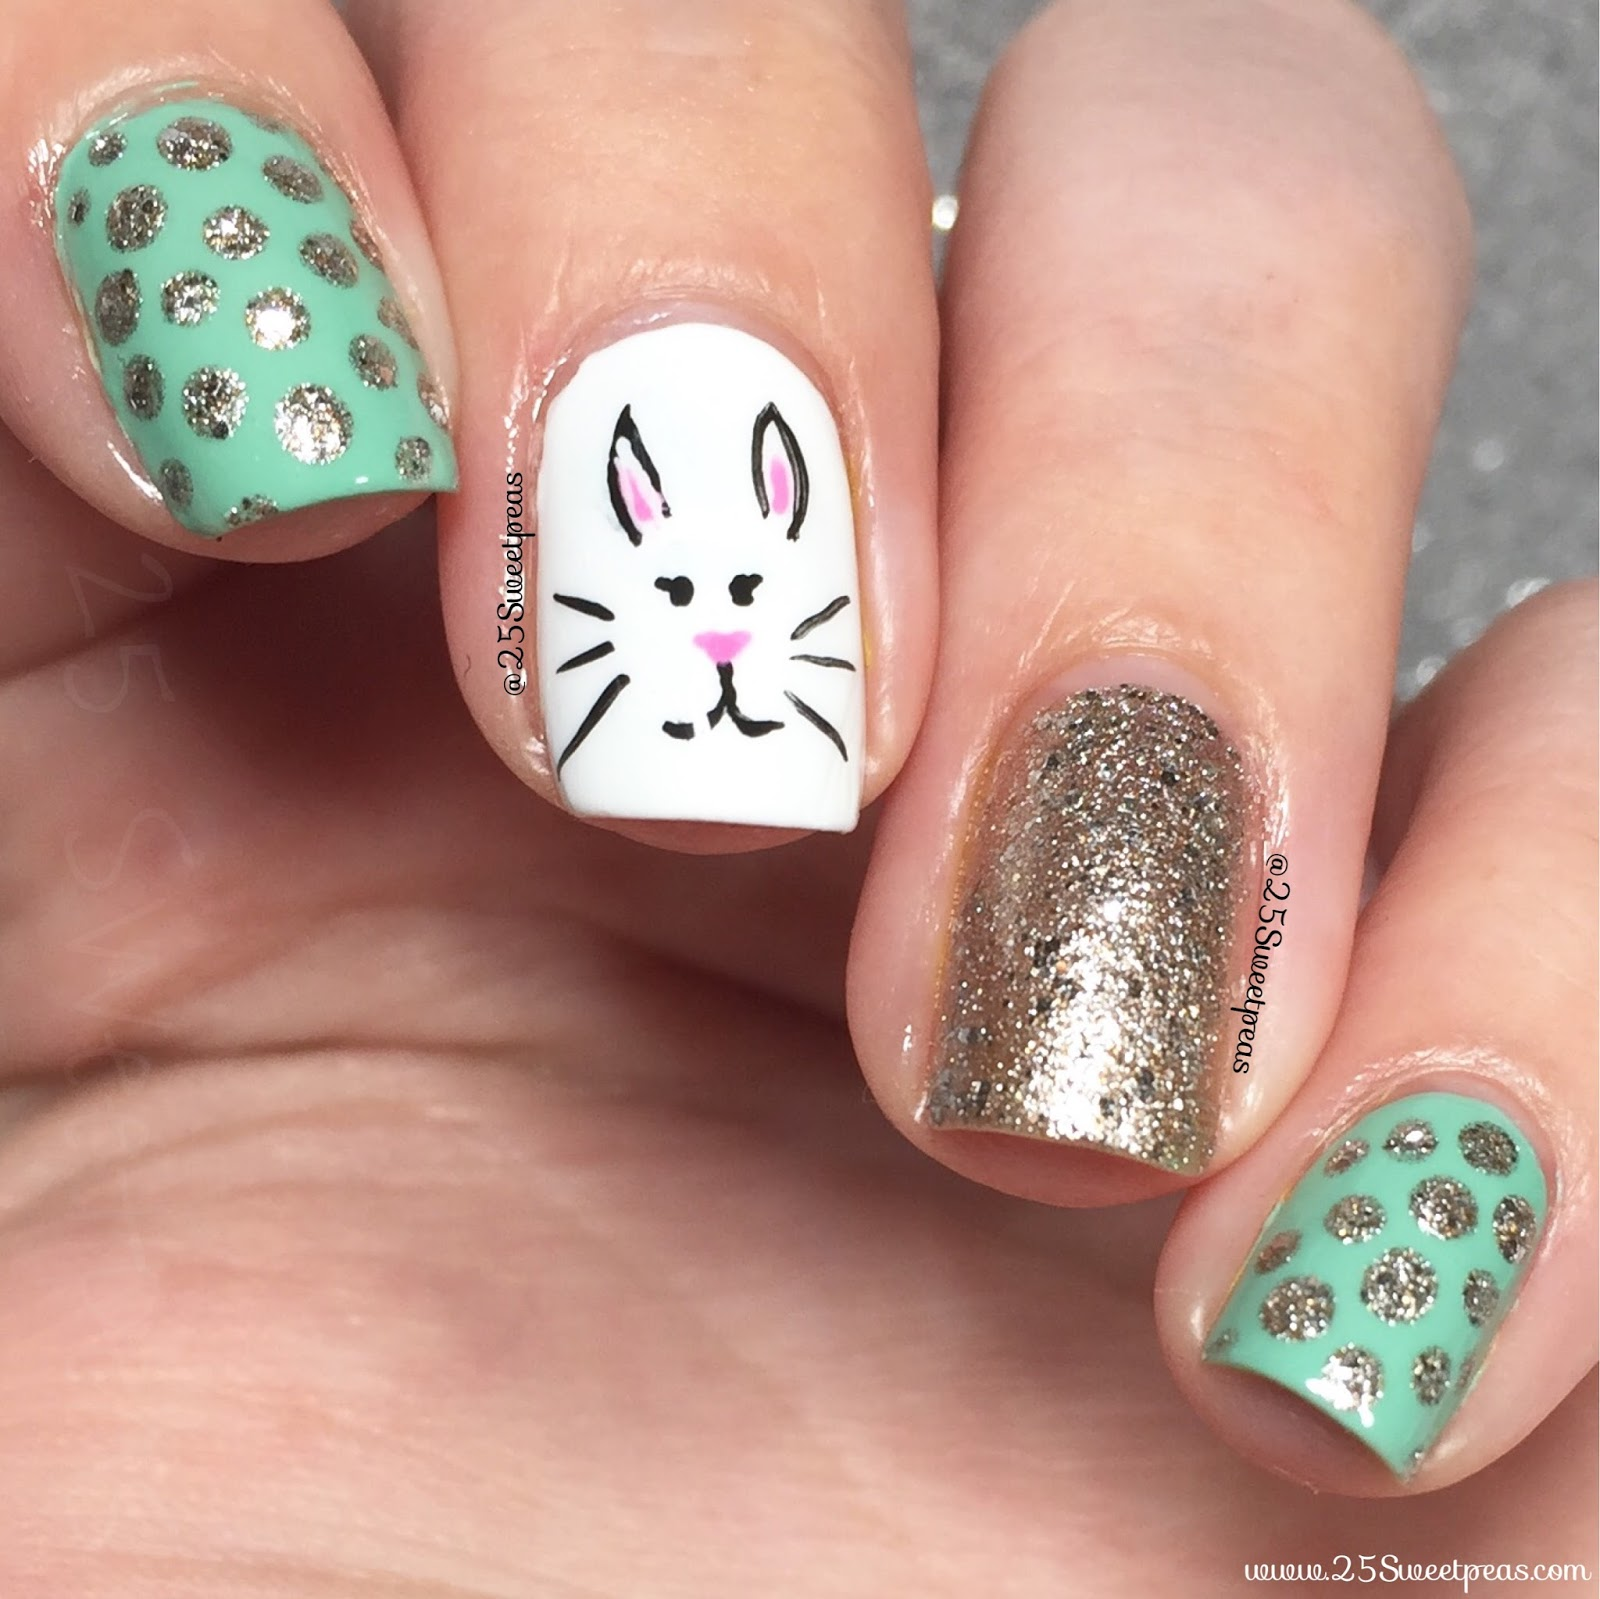 Serendipity Nail Polish Bunny Nails